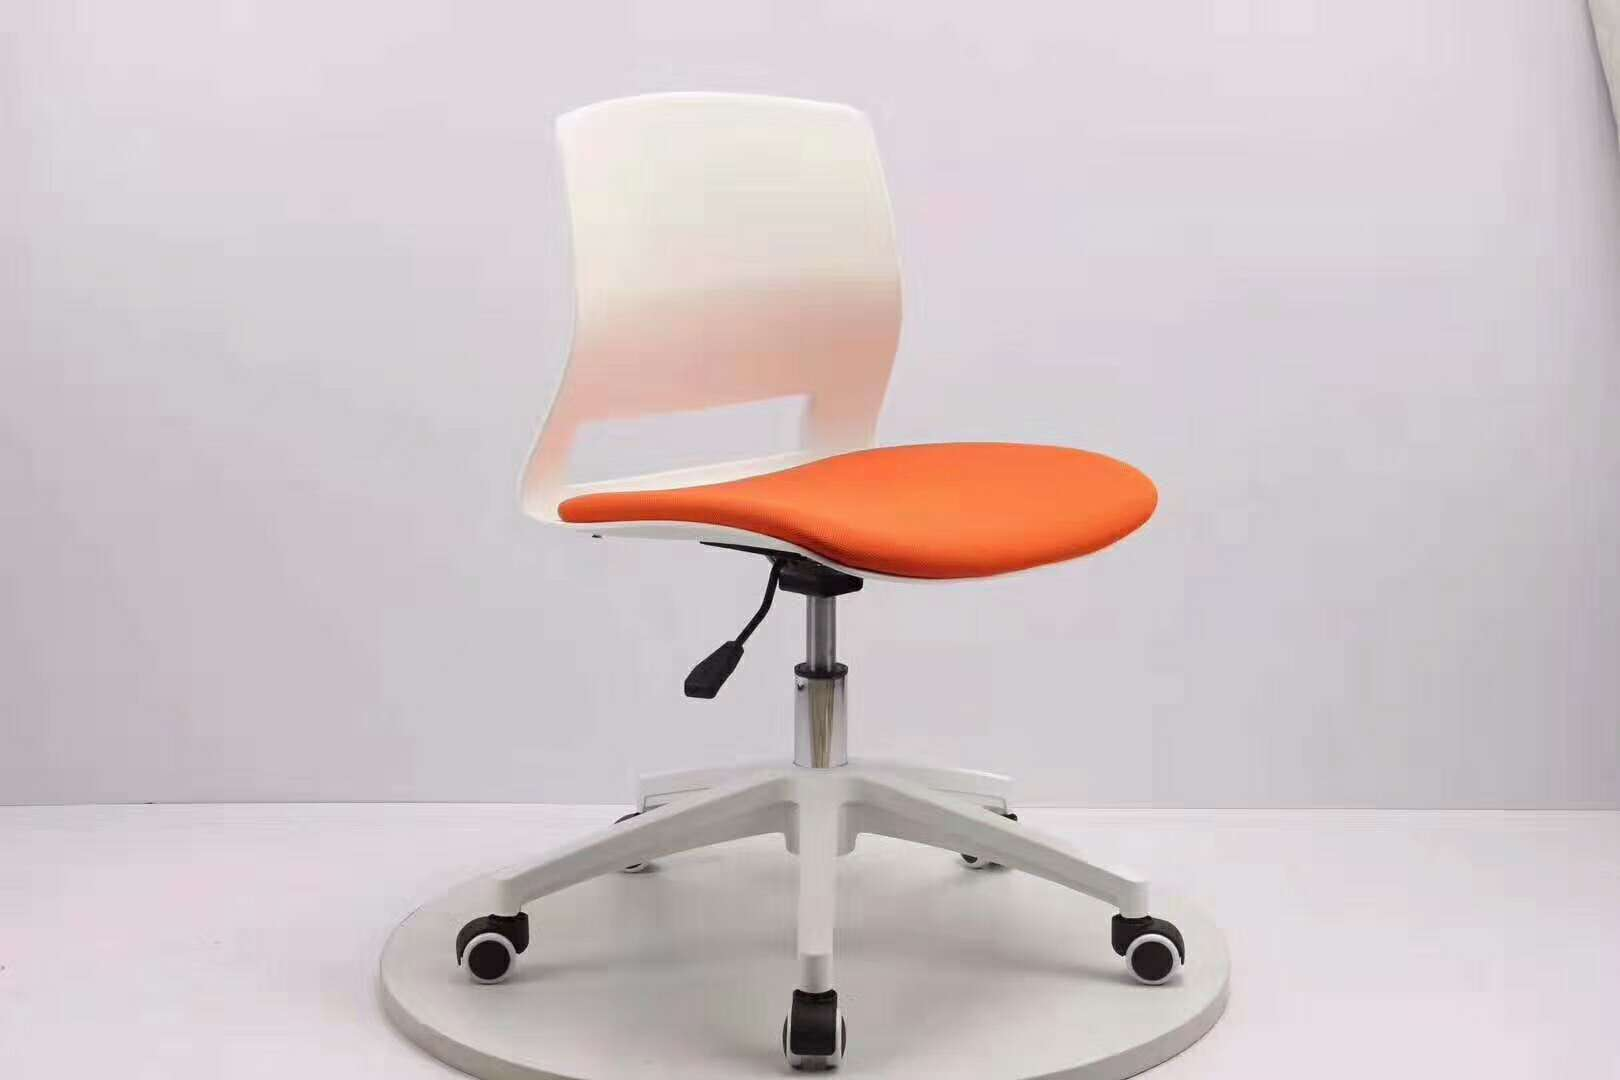 Plastic office chair